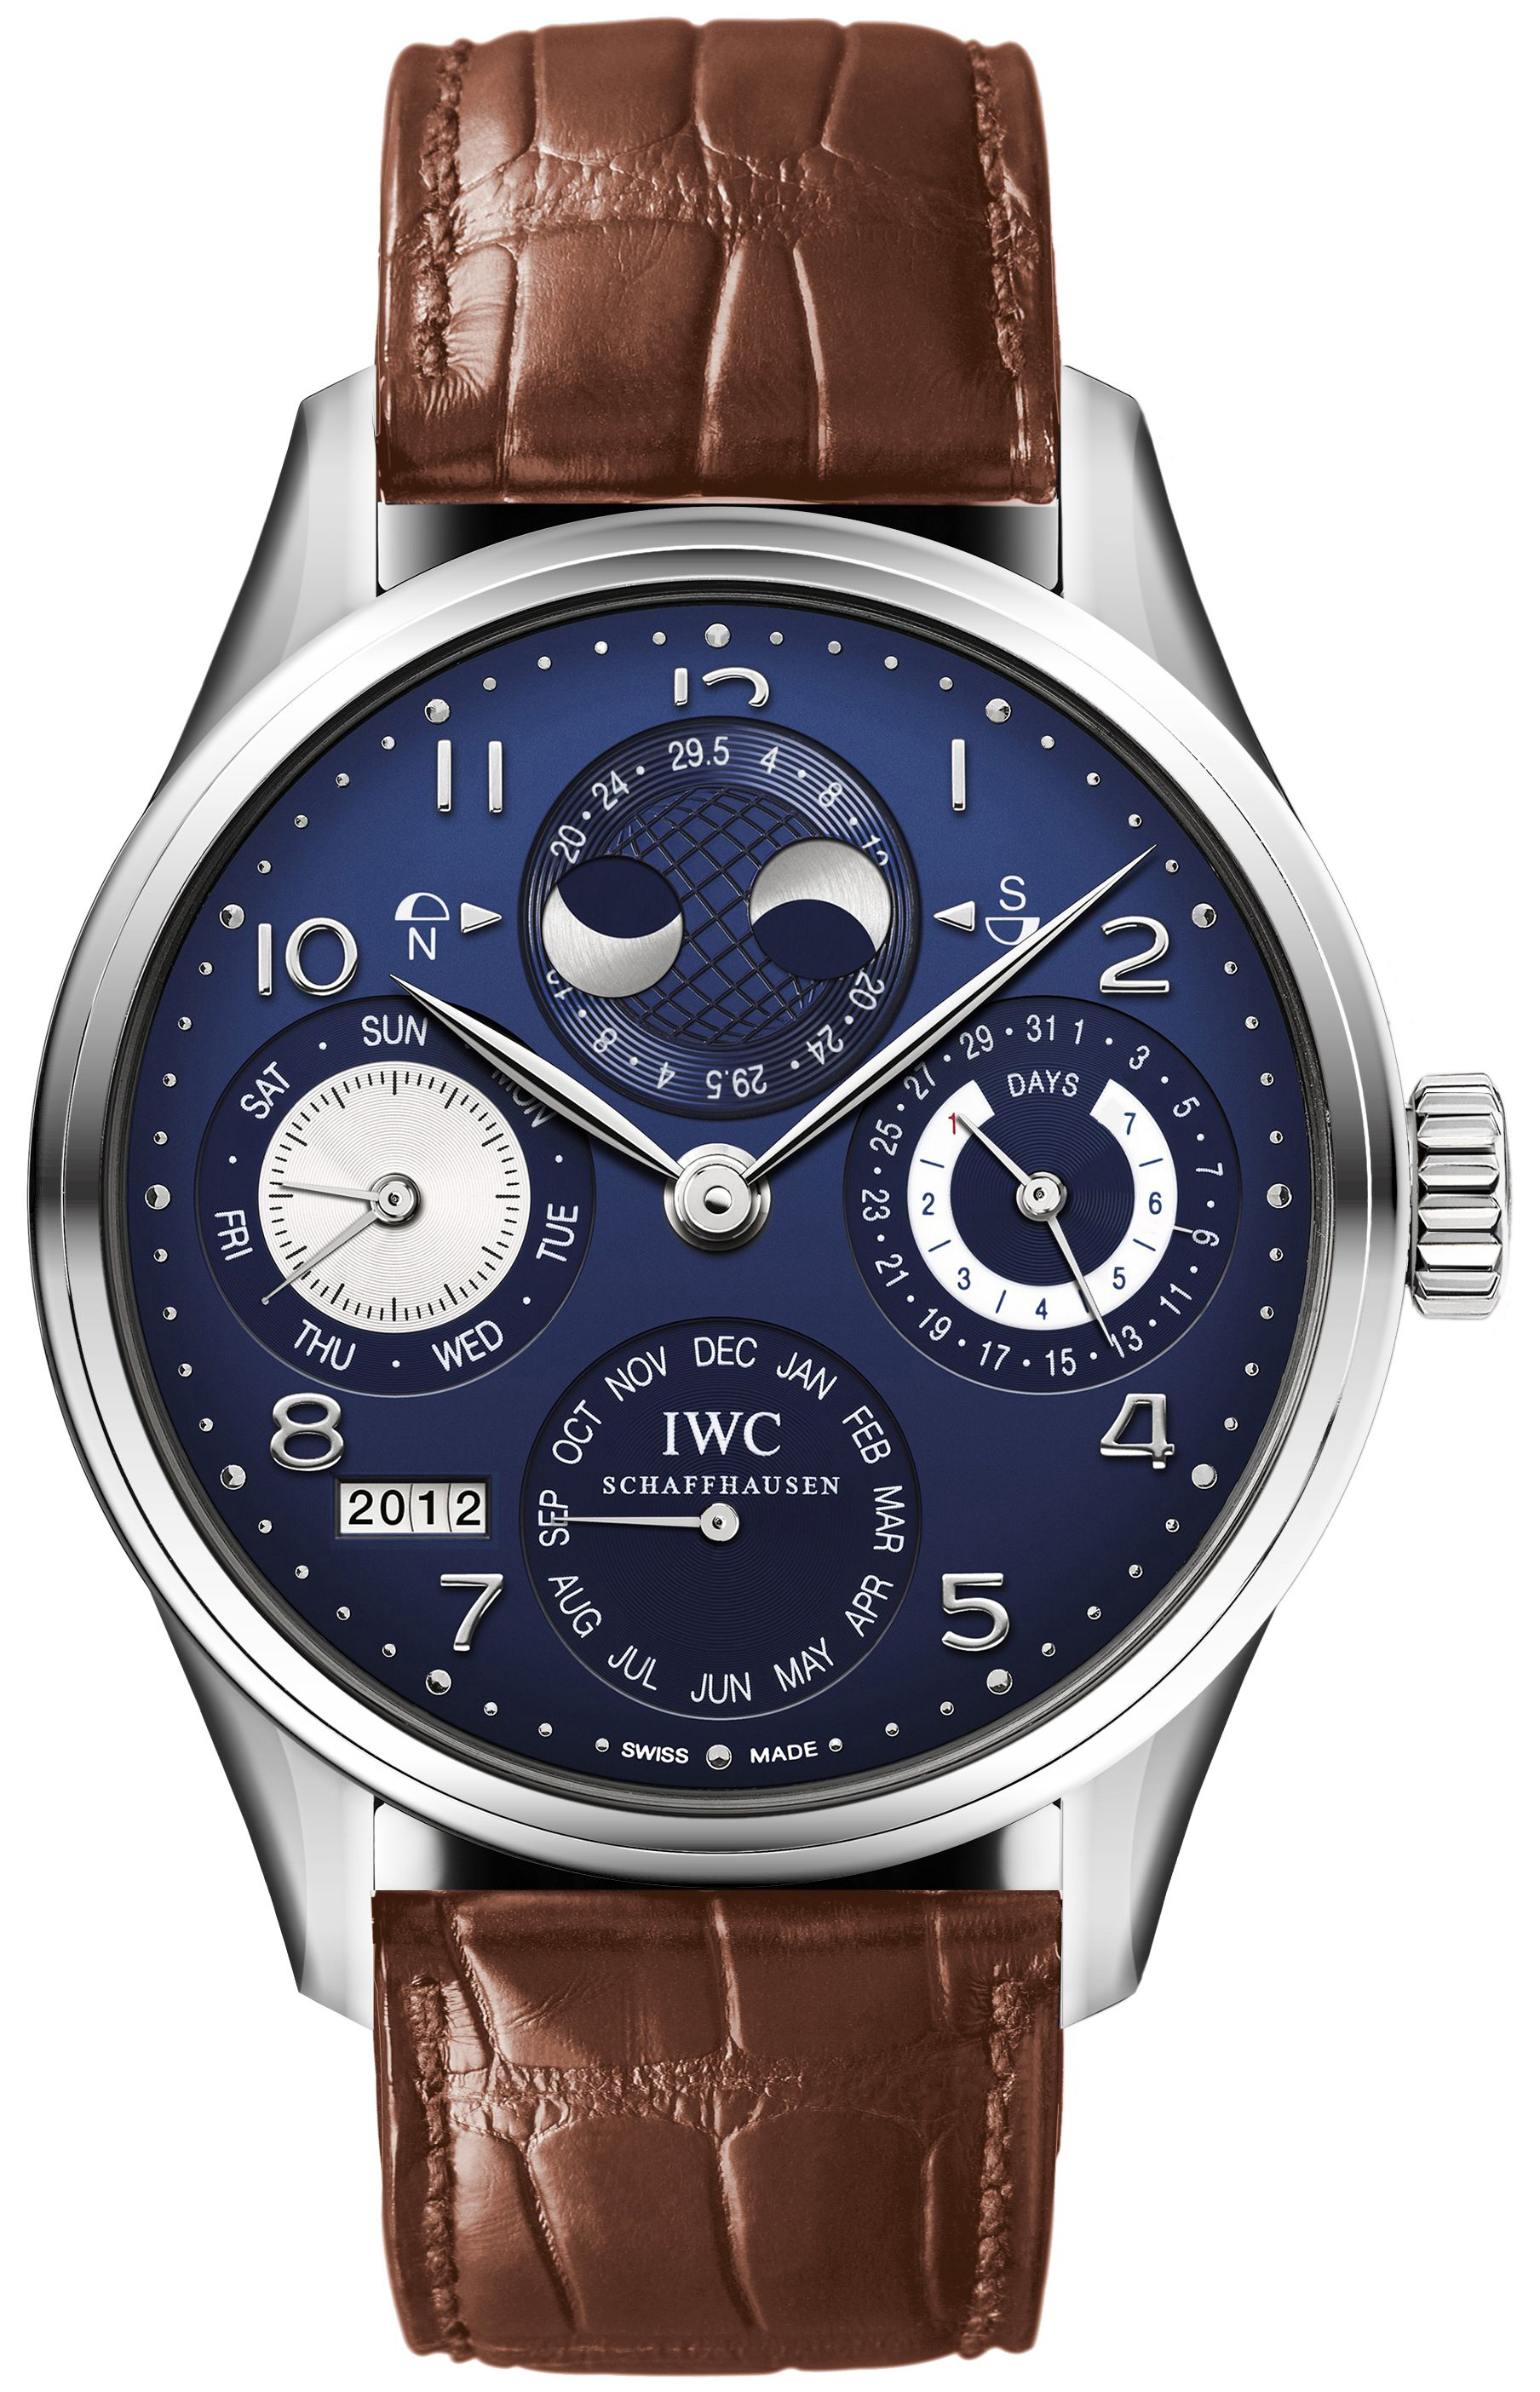 IWC Portuguese Perpetual Calendar Moonphase - Edited with Tan/Brown Leather Band.